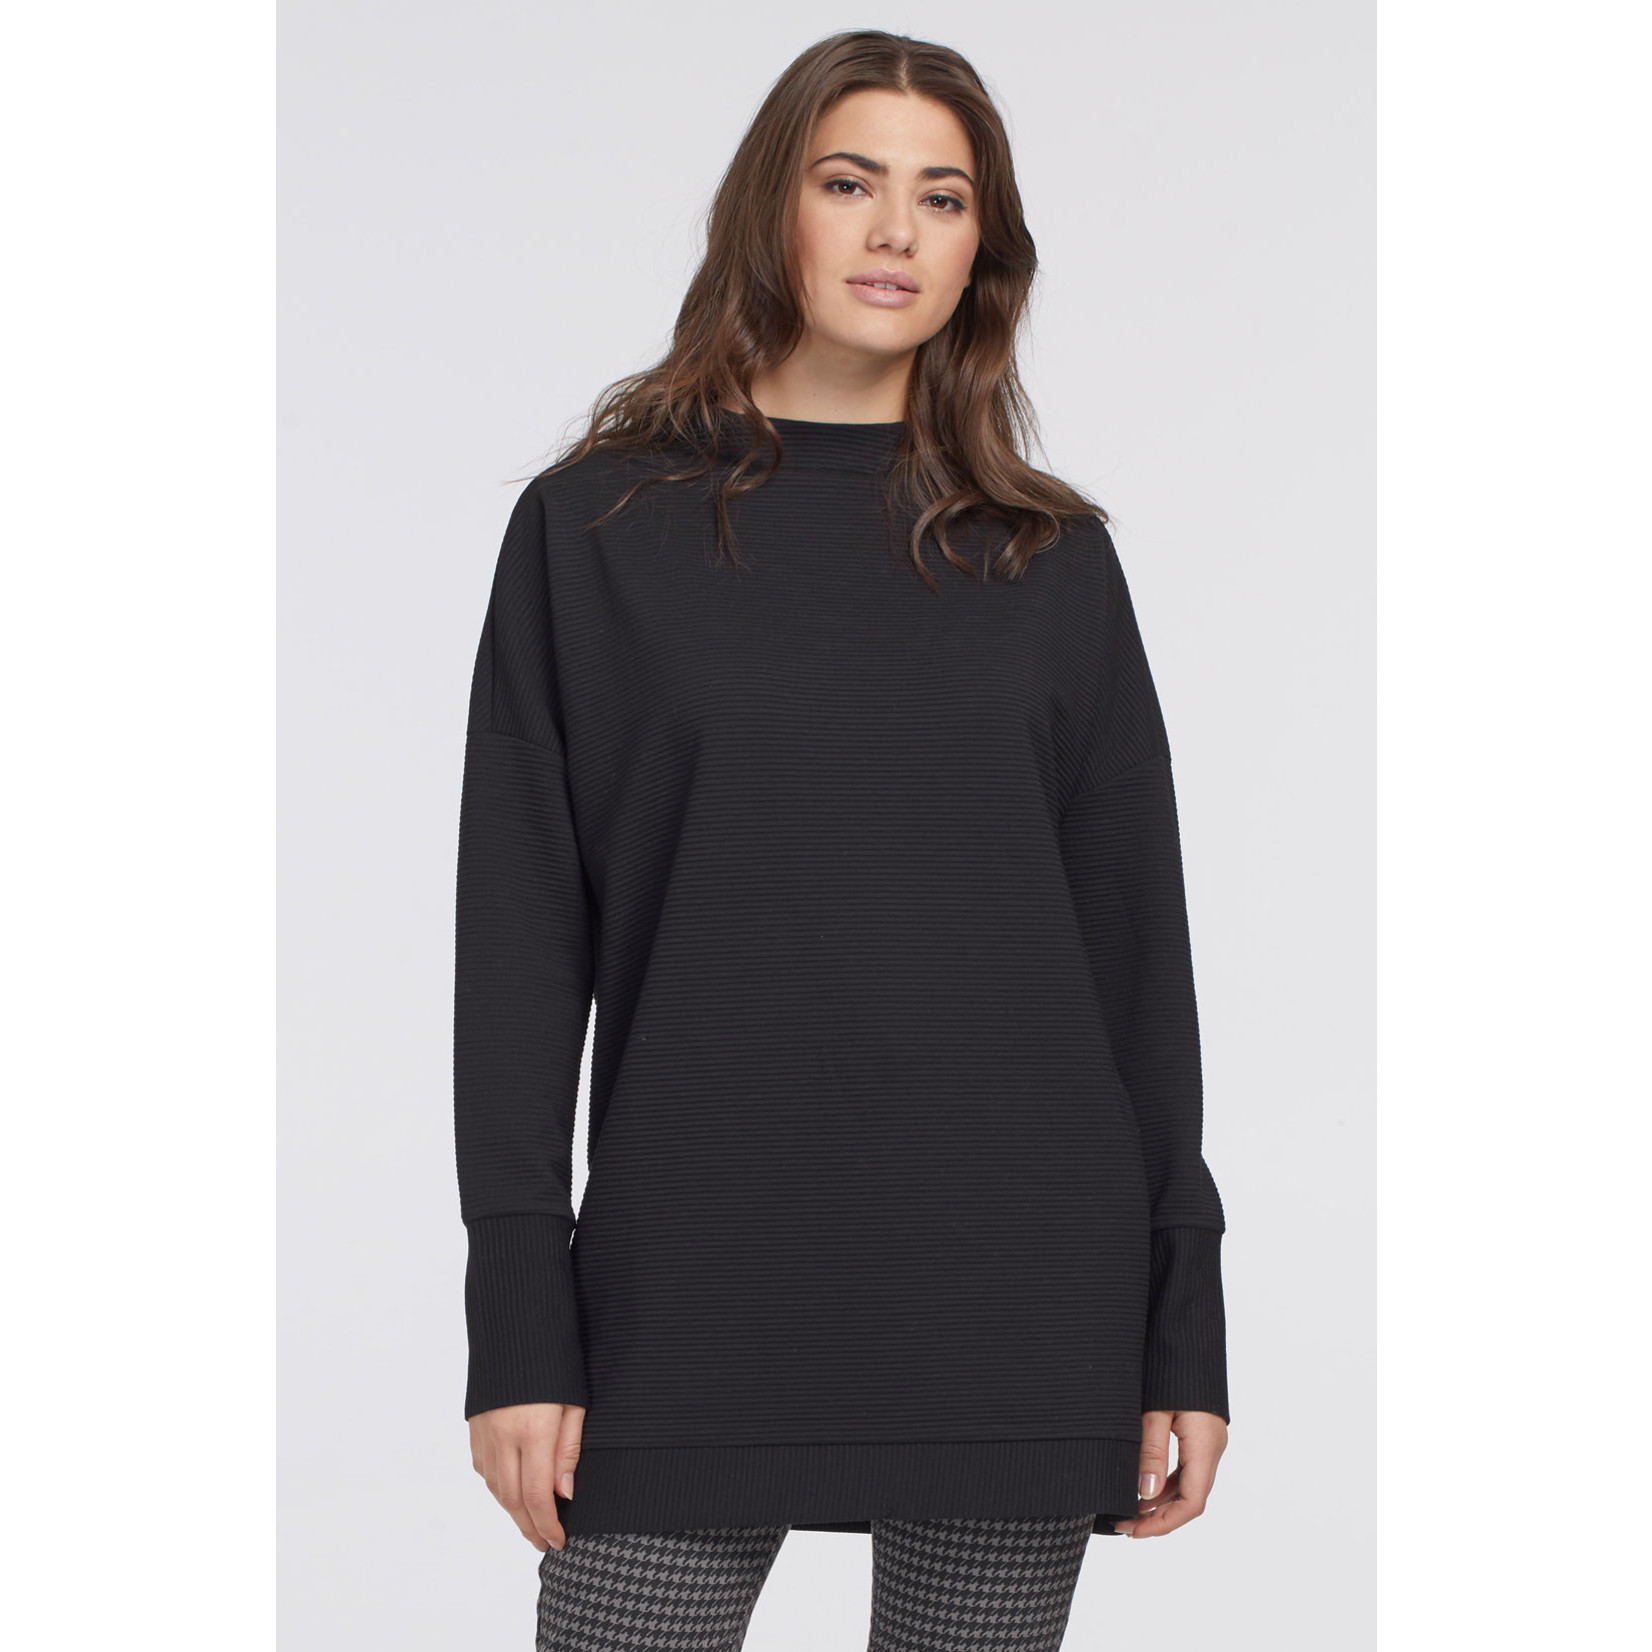 Tribal Funnel Neck Tunic (More Colors)